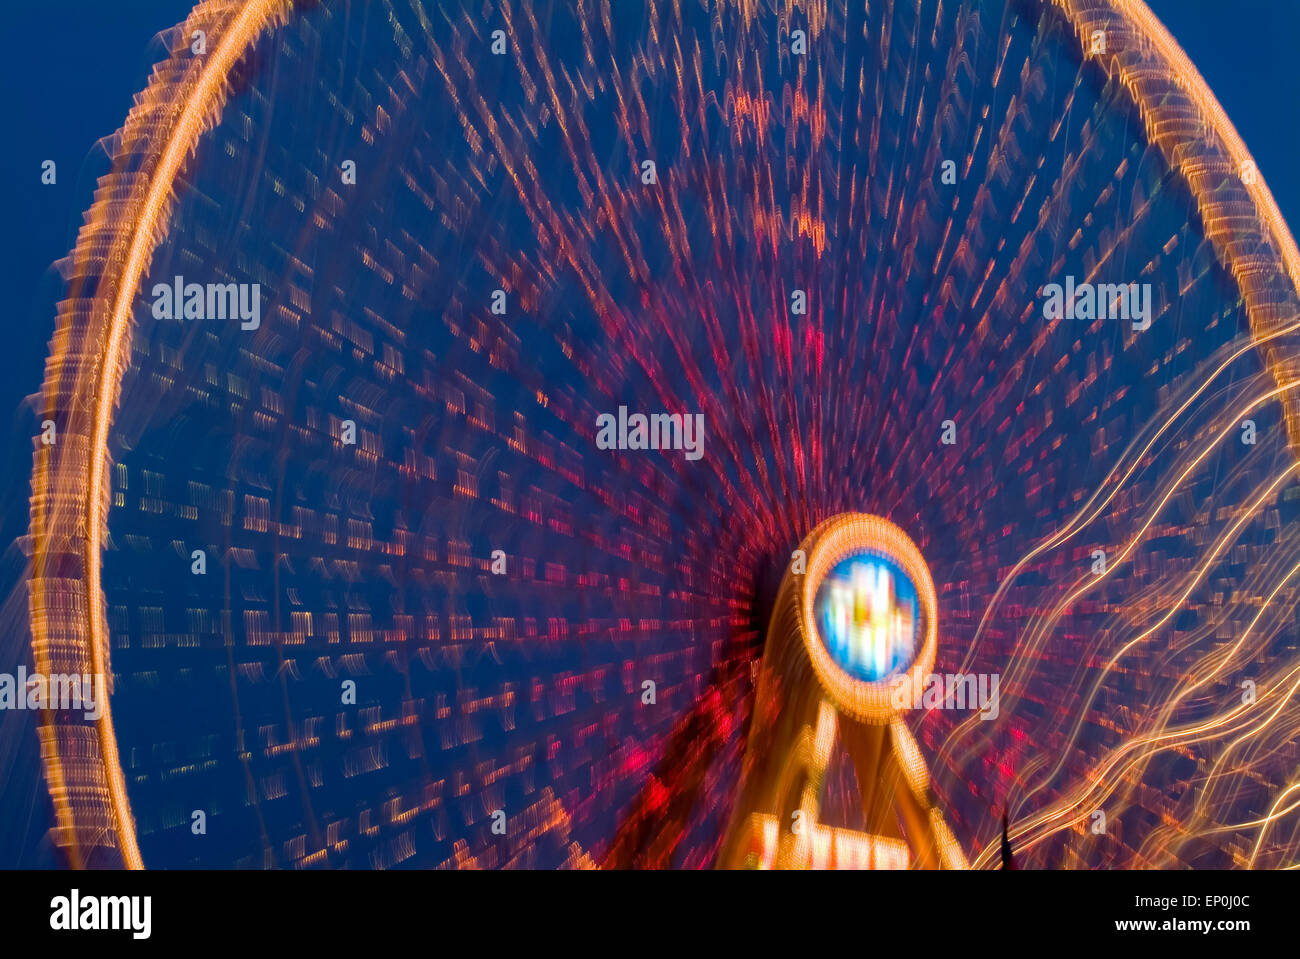 Big wheel on a funfair in motion giant Ferry germany europe - Stock Image